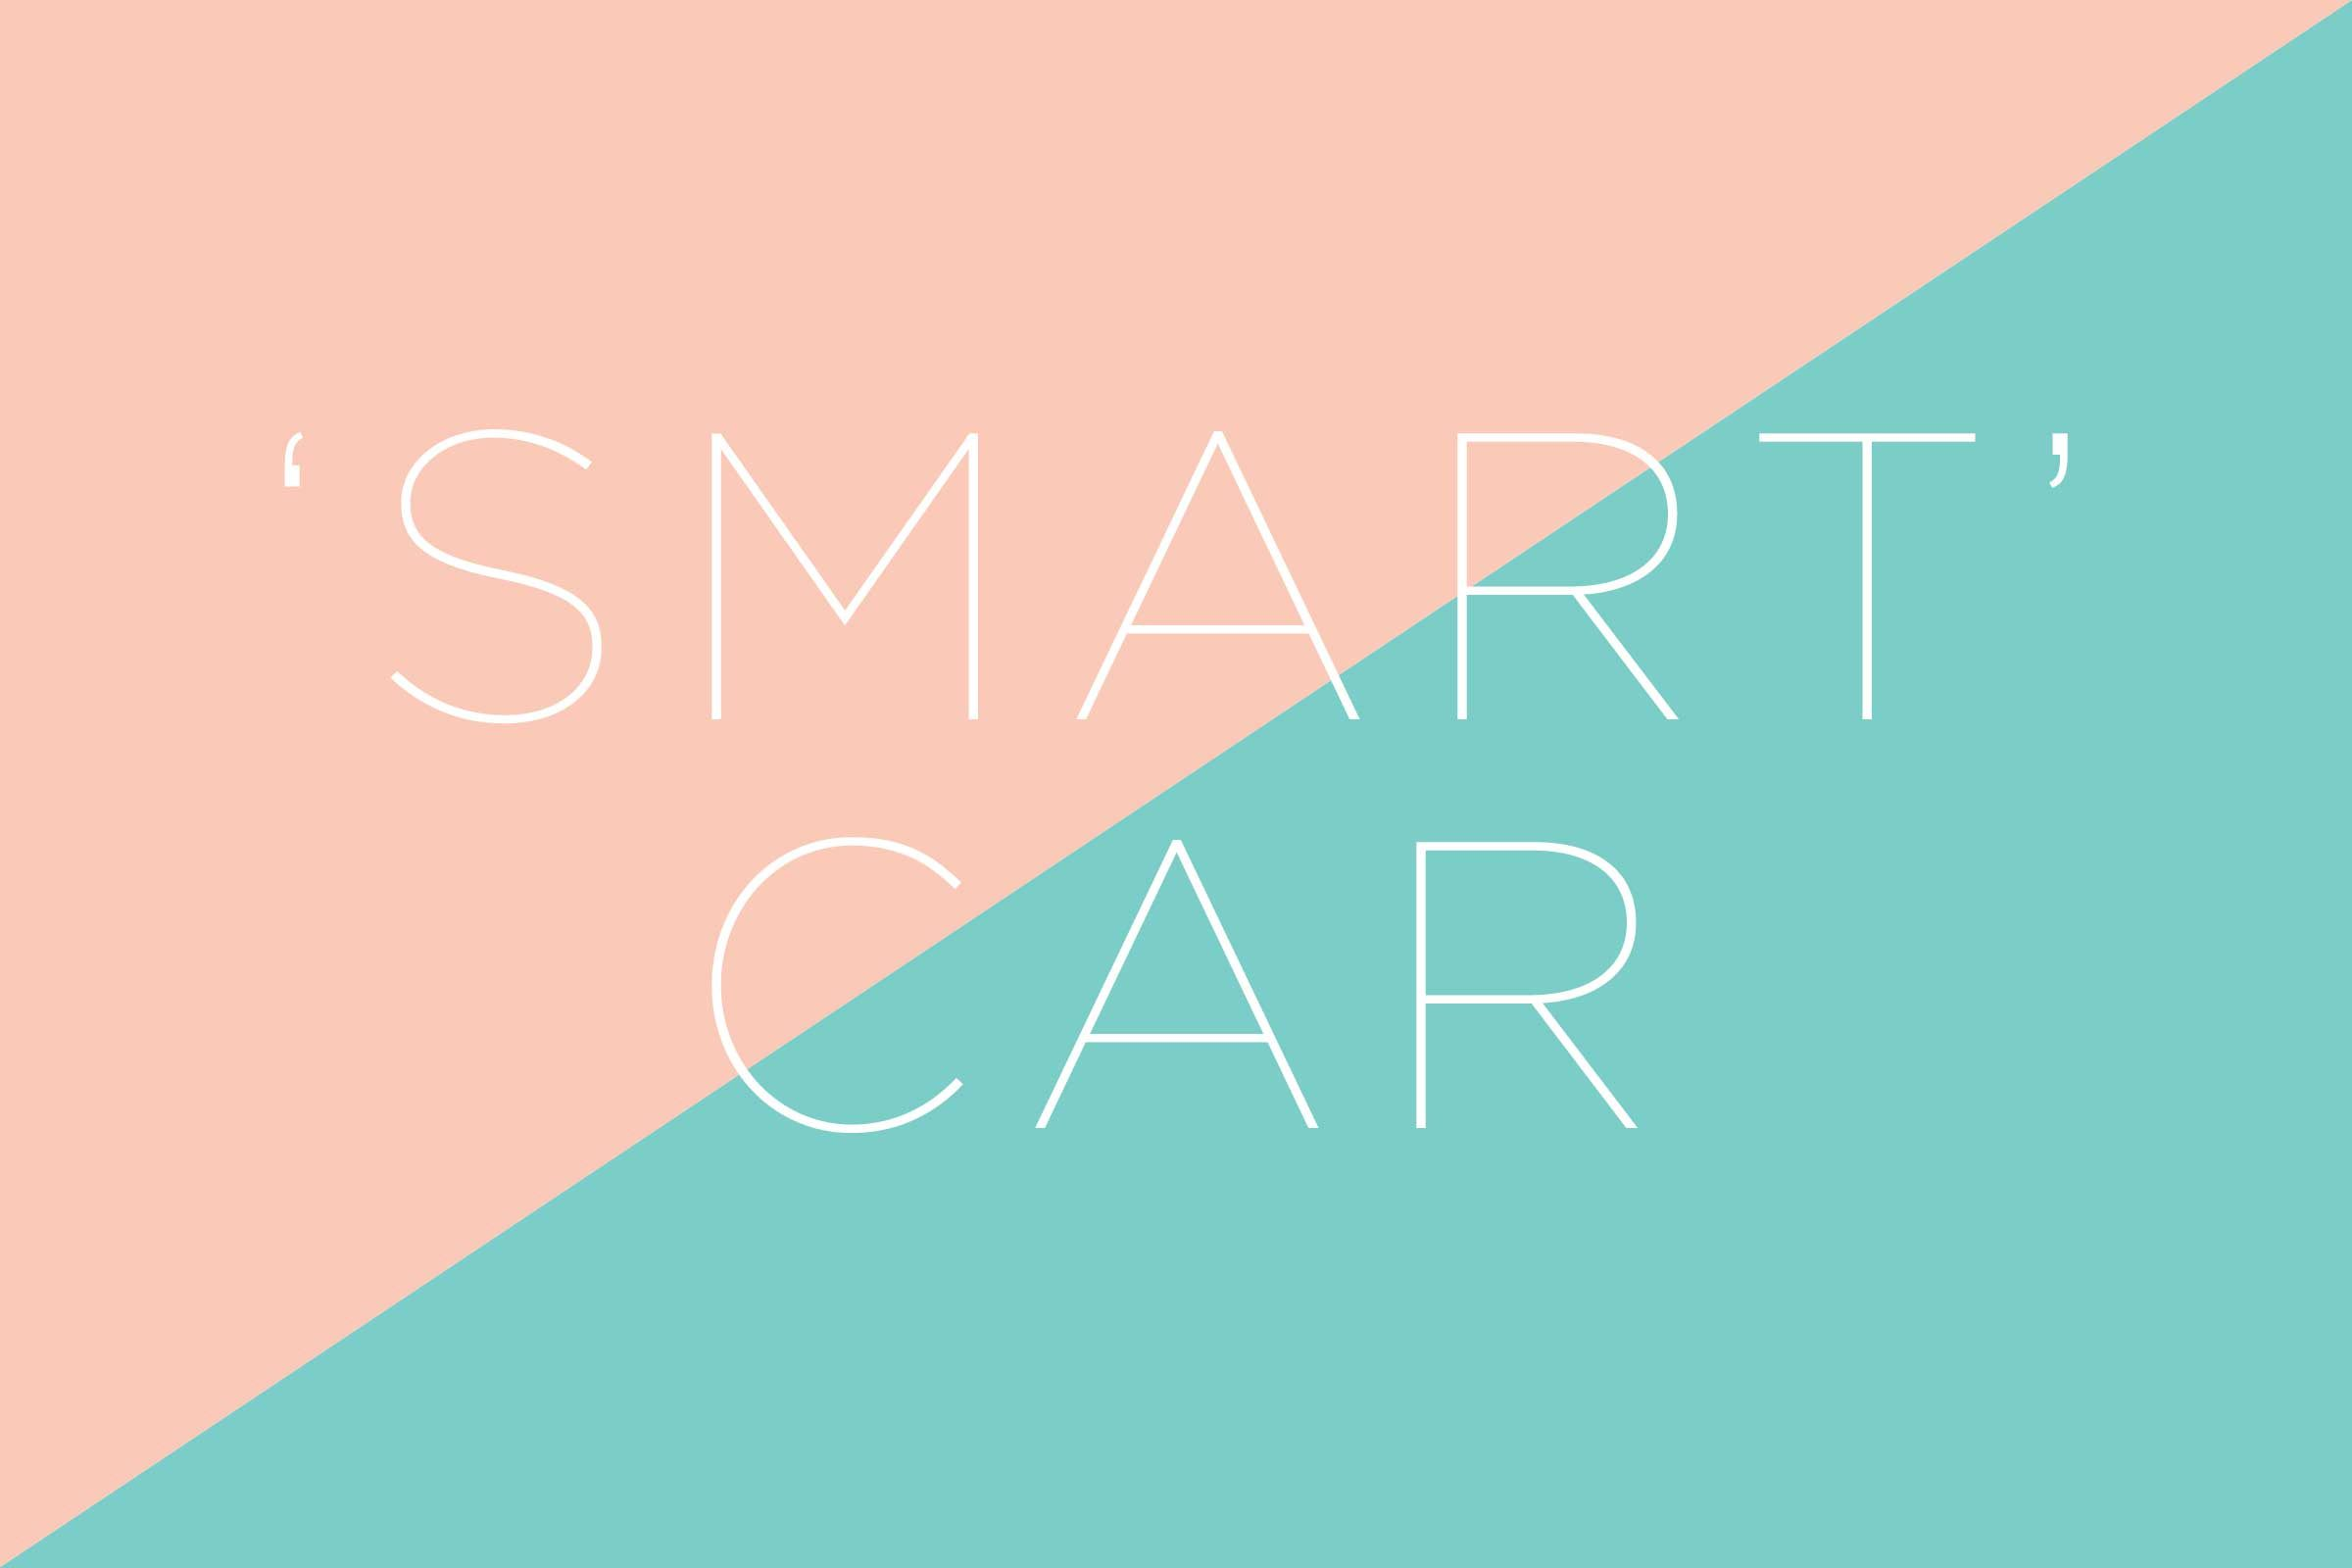 What does 'Smart' Car stand for?